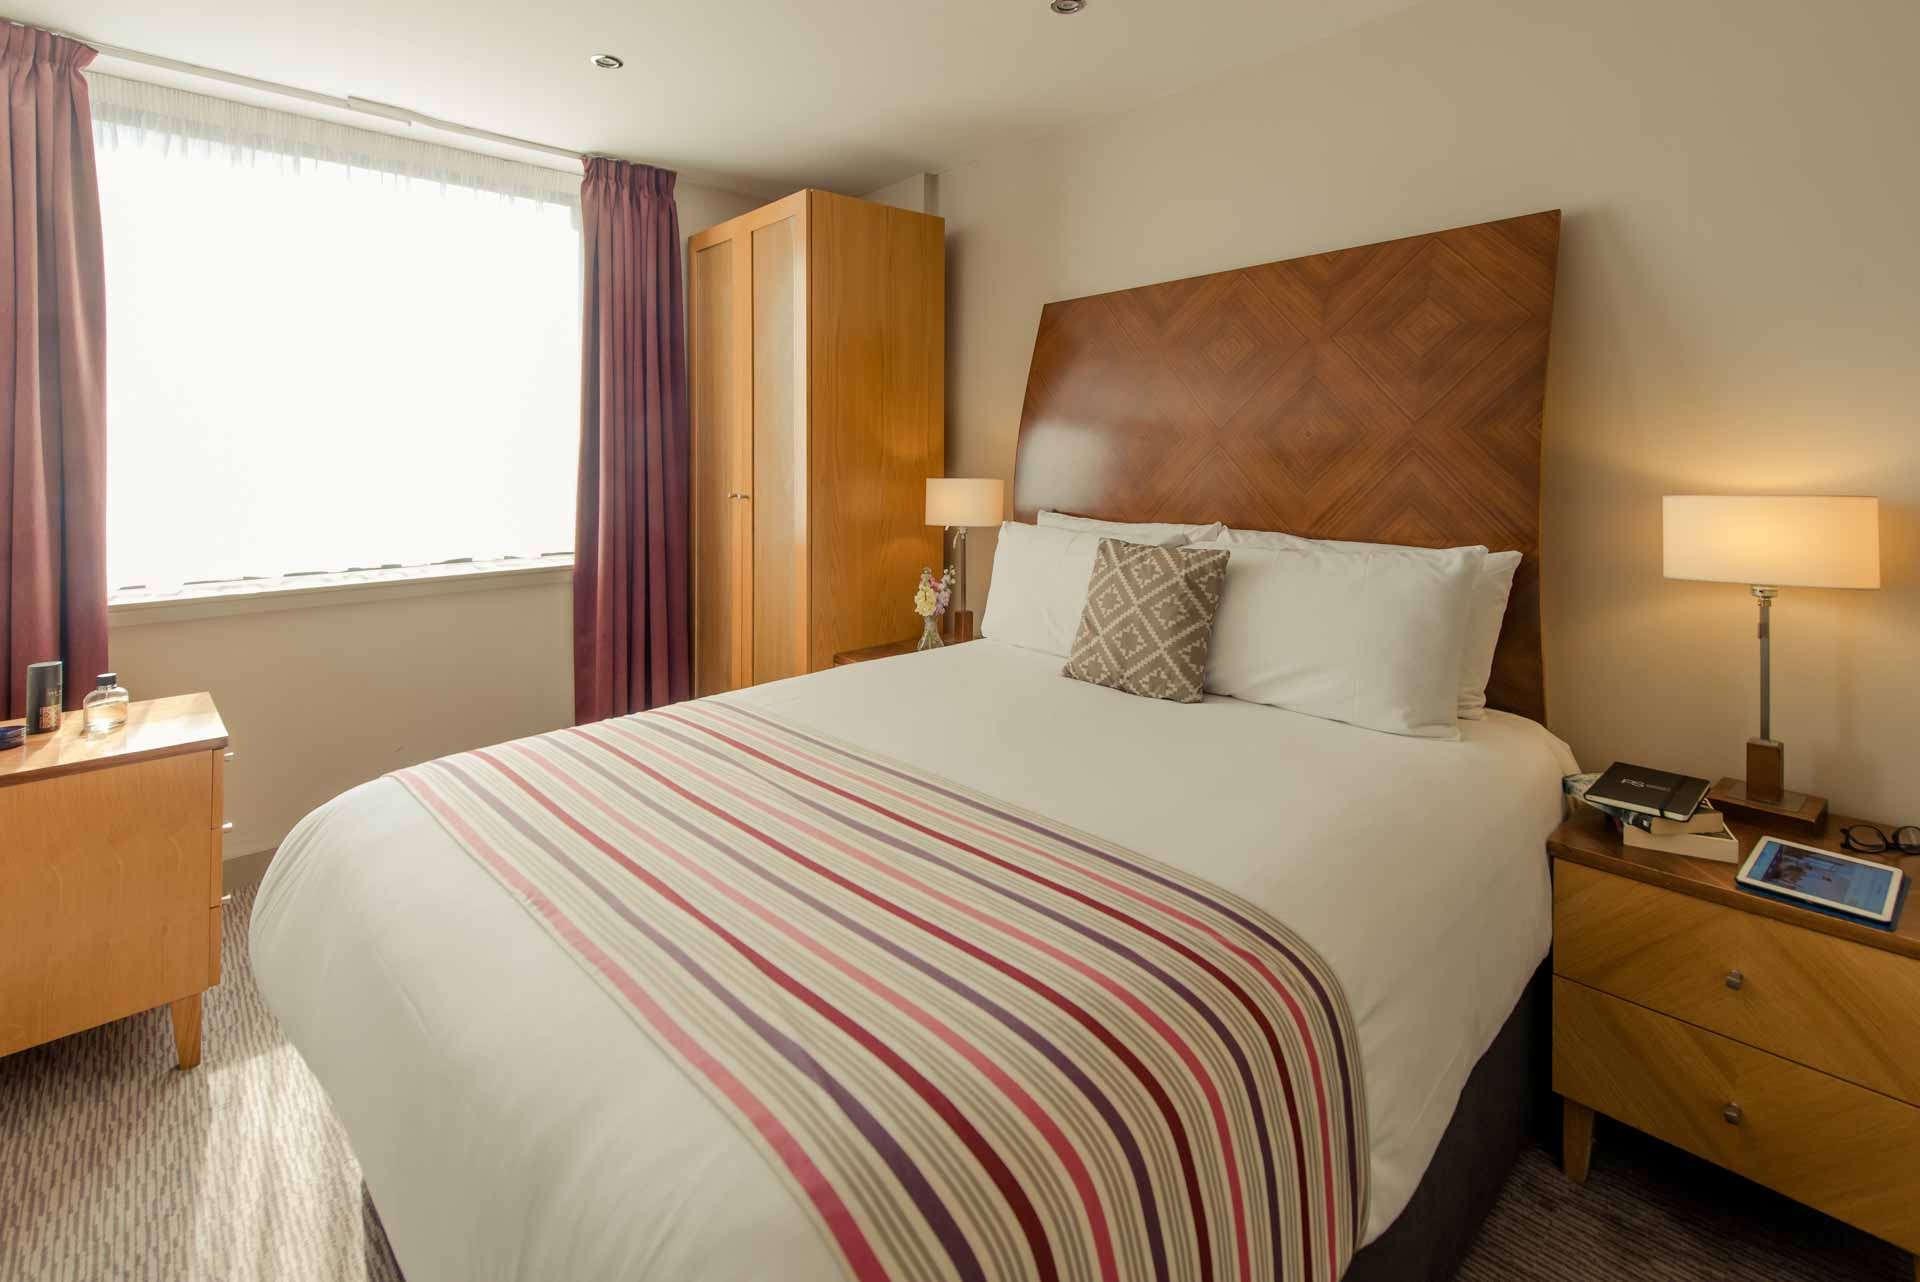 PREMIER SUITES Manchester two bedroom apartment